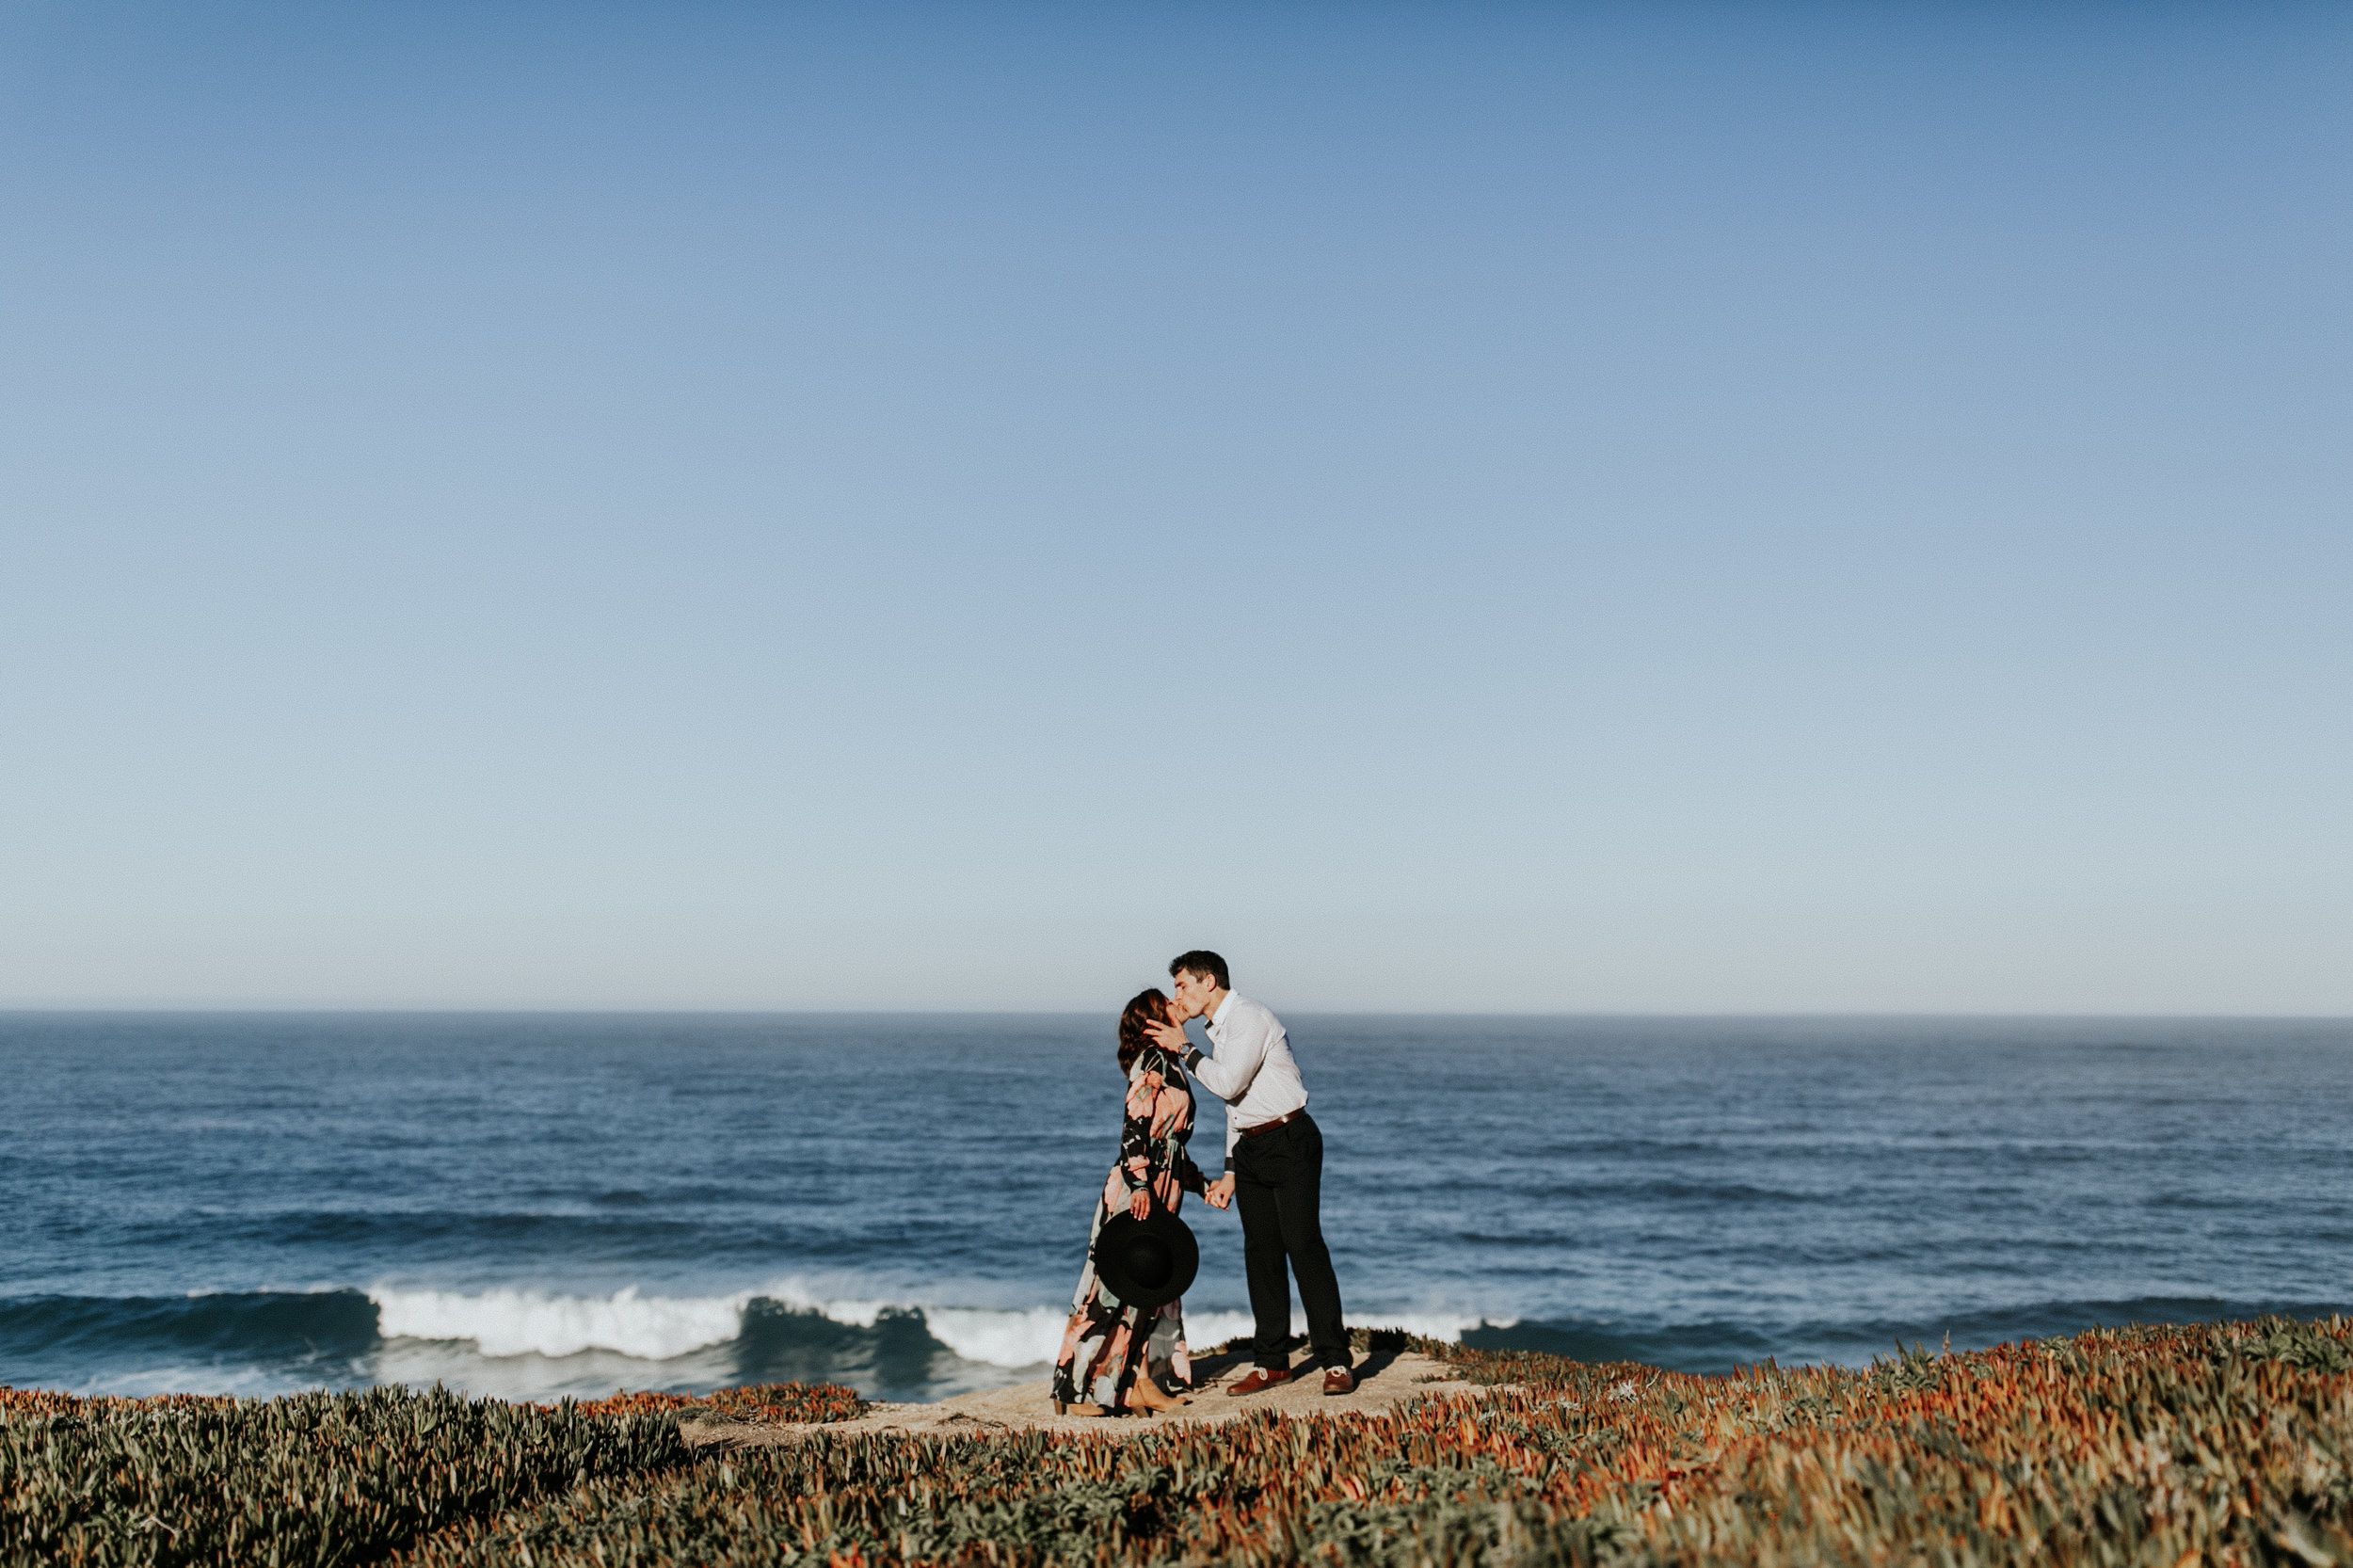 gracetphotography-destination-wedding-photographer-bigsur-adventure-elopement-37.jpg